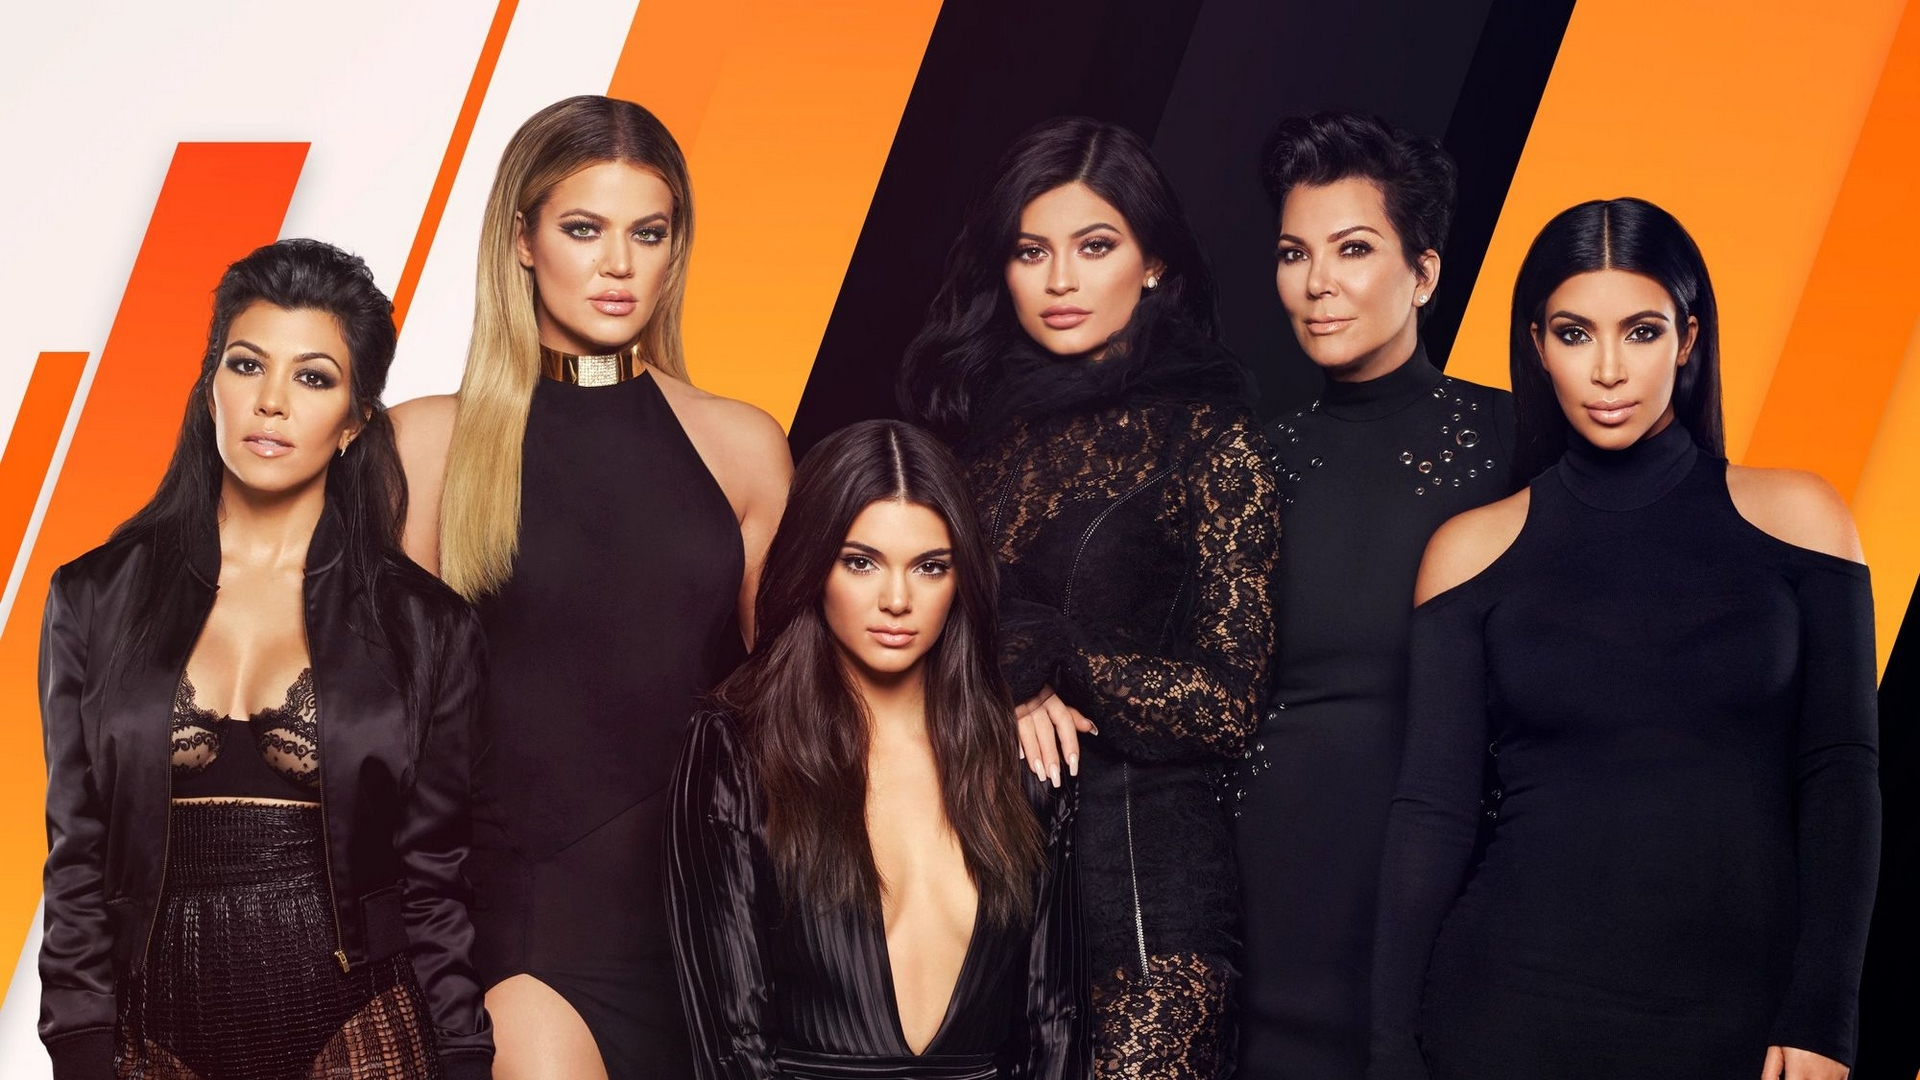 Keeping Up with the Kardashians - Season 16 Episode 11 : Treachery